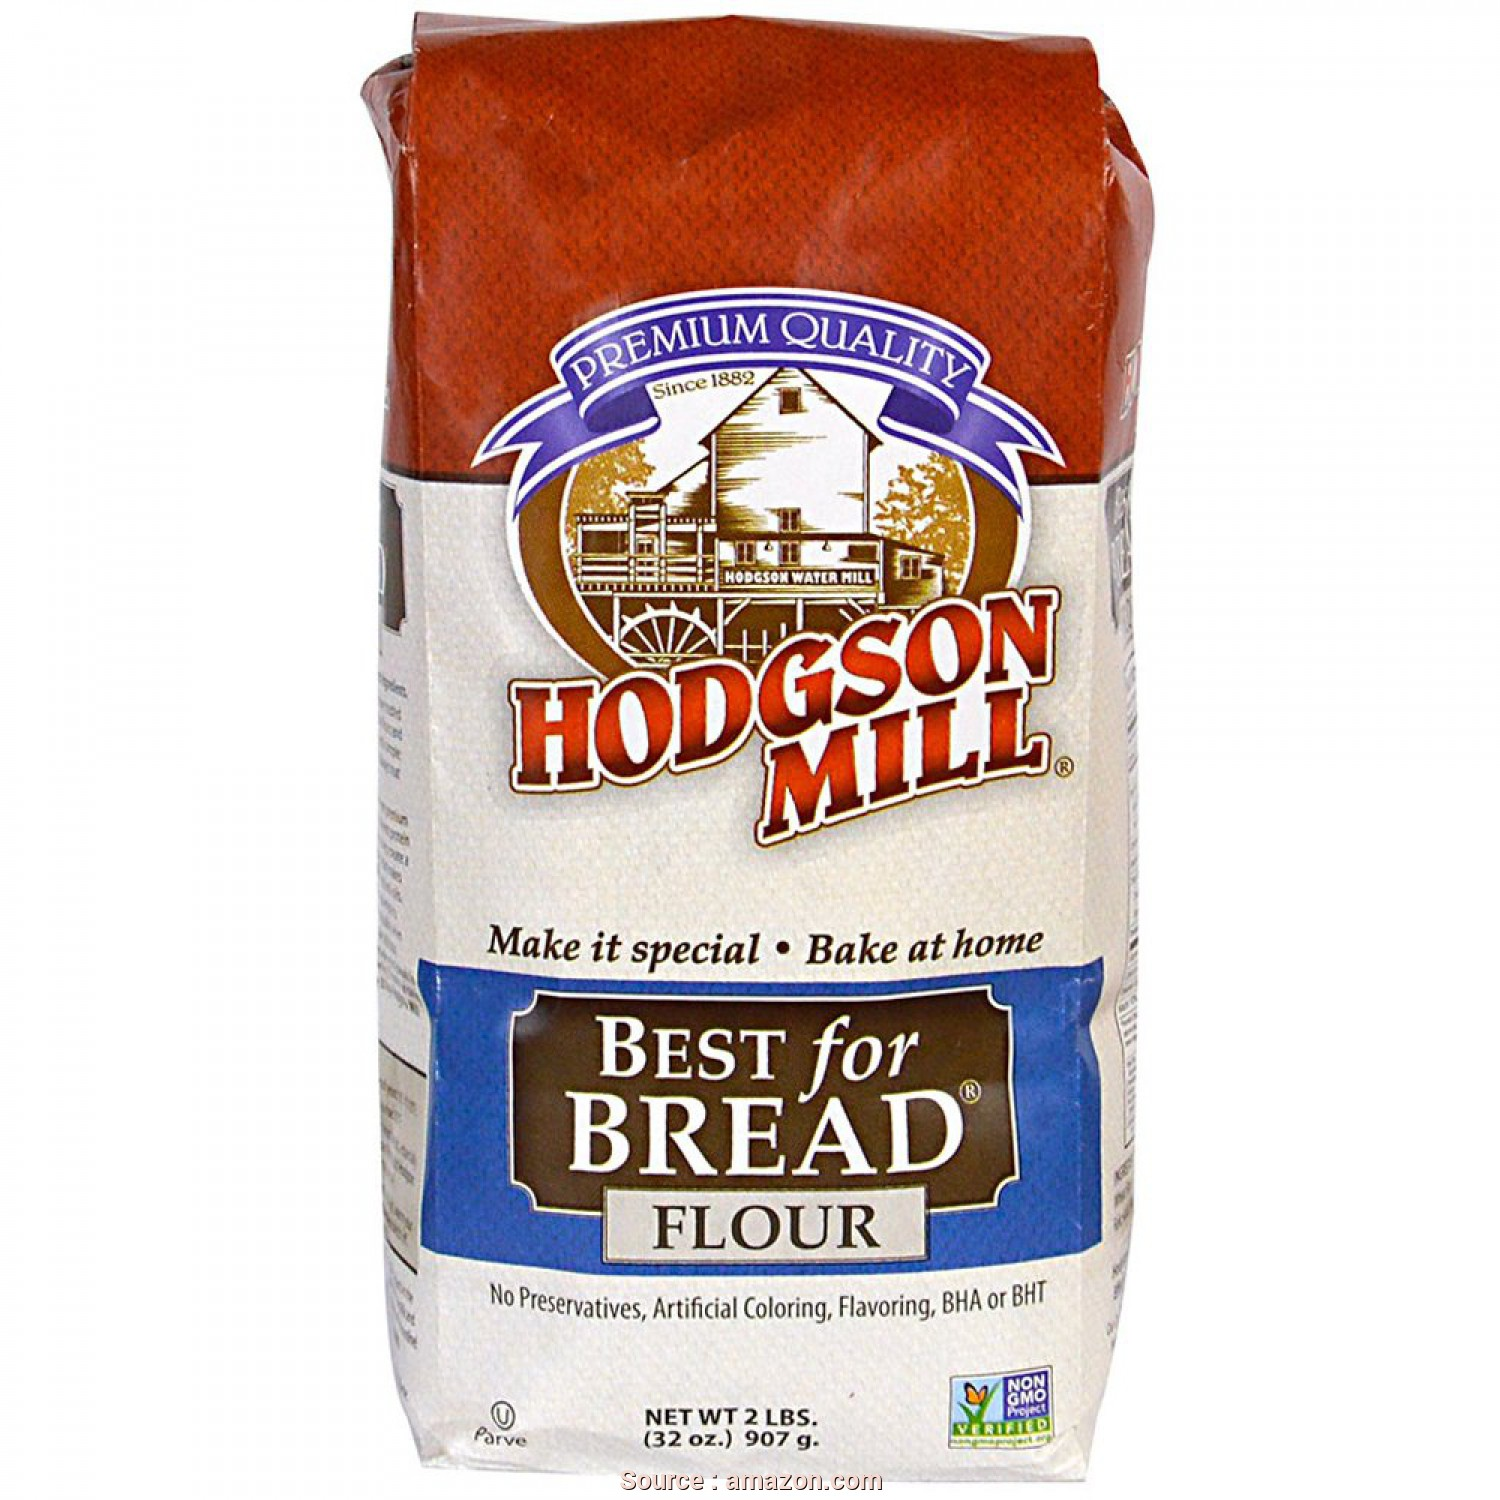 B Divani Flour, Bellissimo Amazon.Com : Hodgson Mill Best, Bread Flour, 32-Ounce (Pack Of 6) : Wheat Flours, Meals : Grocery & Gourmet Food